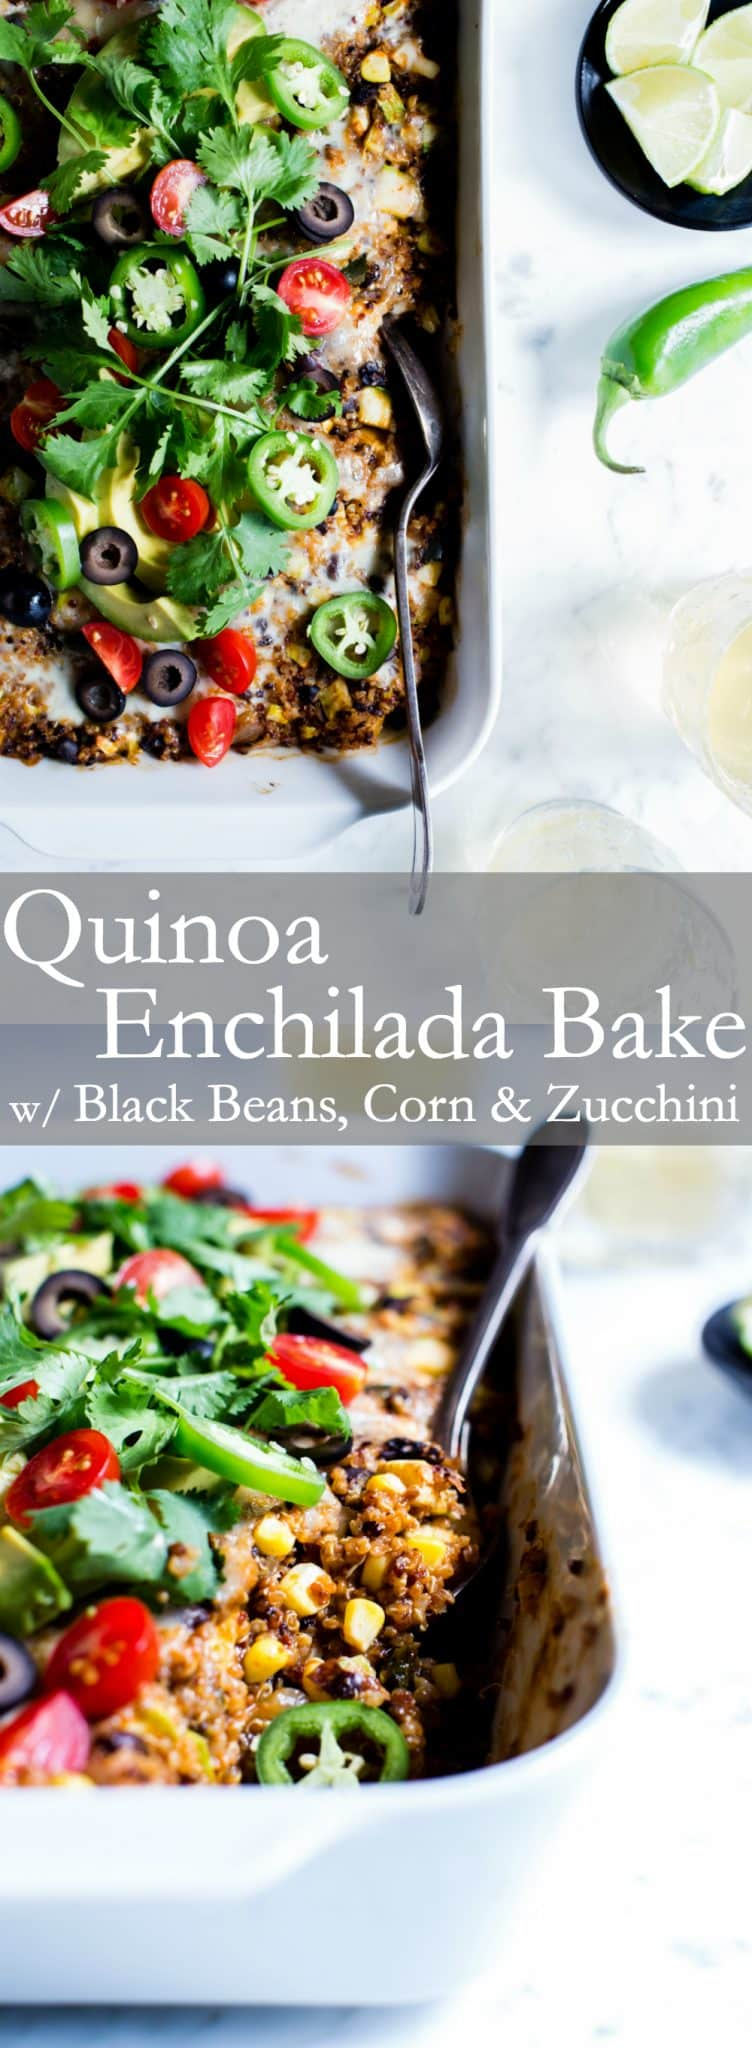 Chock full of veggies, black beans, cheese and homemade enchilada sauce, this Quinoa Enchilada Bake with Black Beans is a fabulous casserole to feed a small crowd. It's freezer friendly and makes for easy leftovers. #vegetarian #glutenfree #MexicanFood #Casserole #QuinoaBake